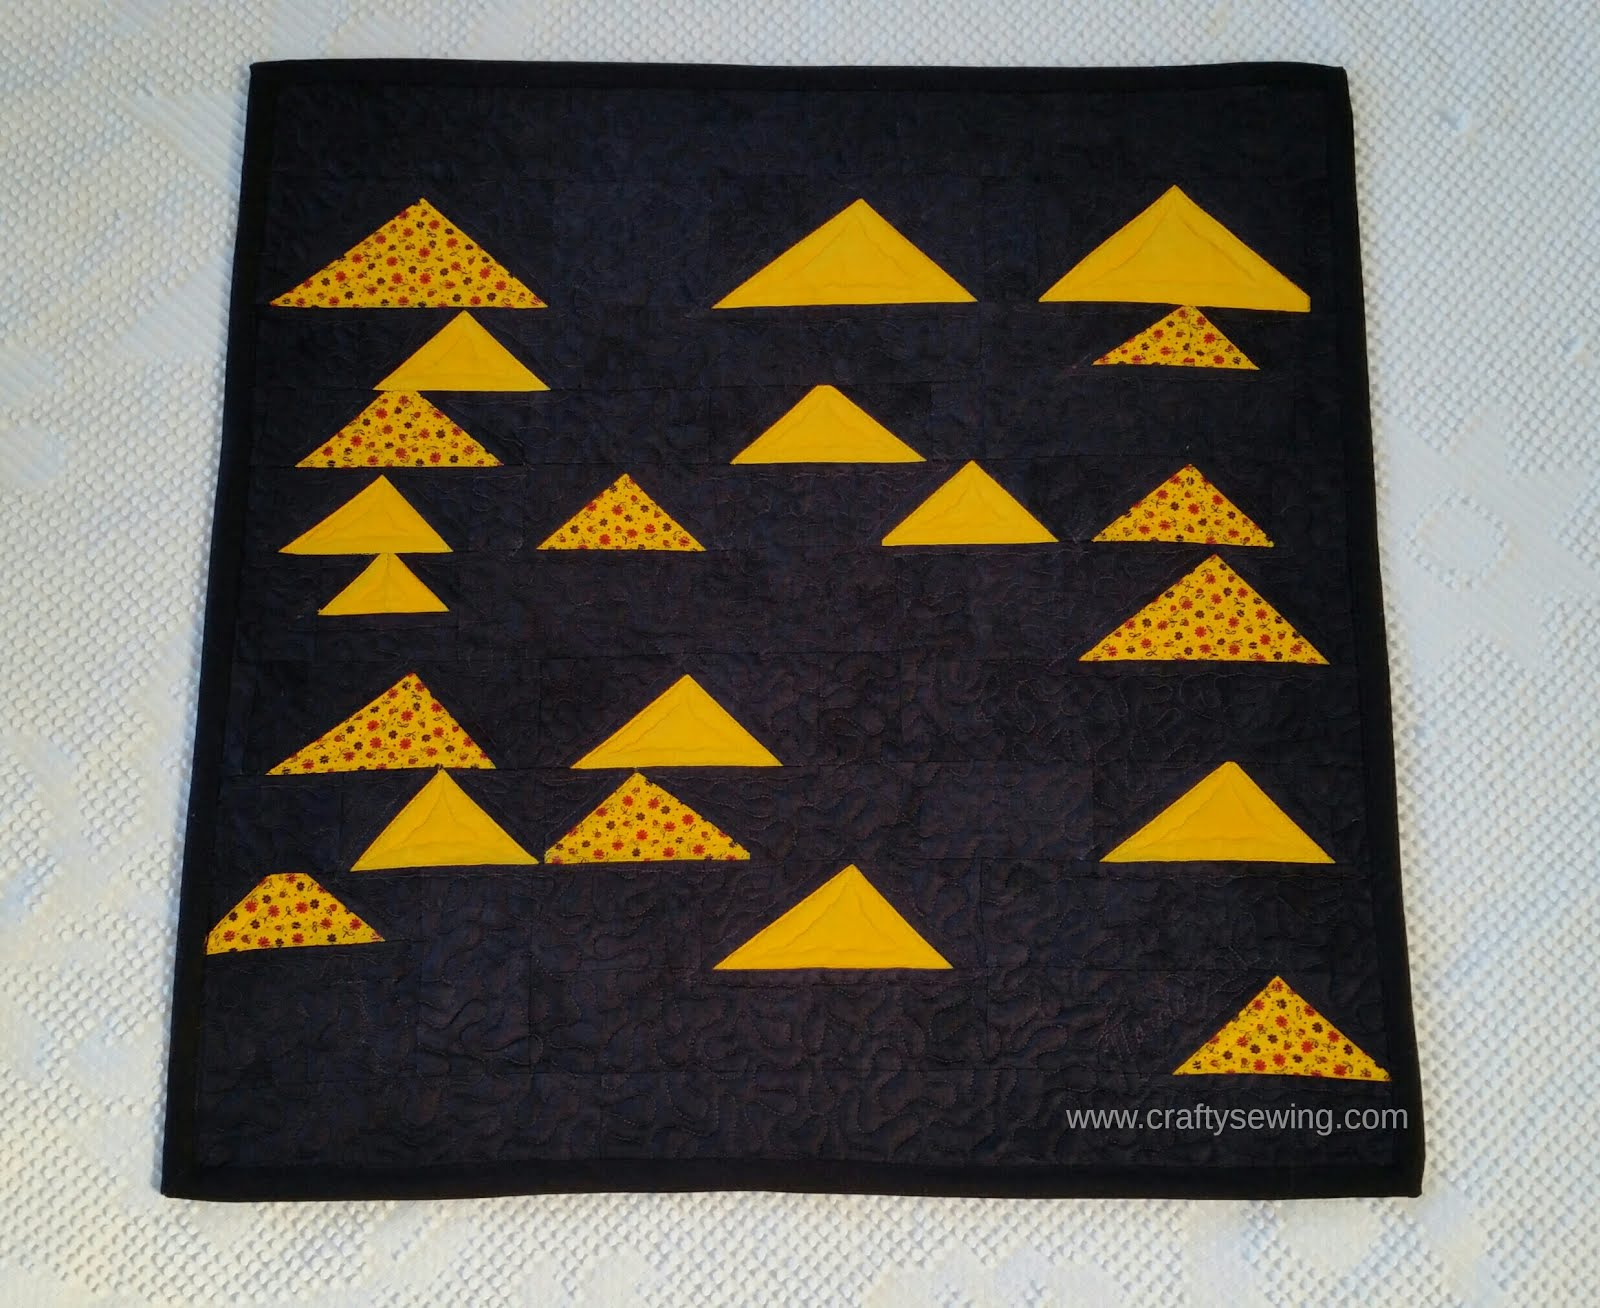 2015 Off Season 6 Project Quilting Challenge - September